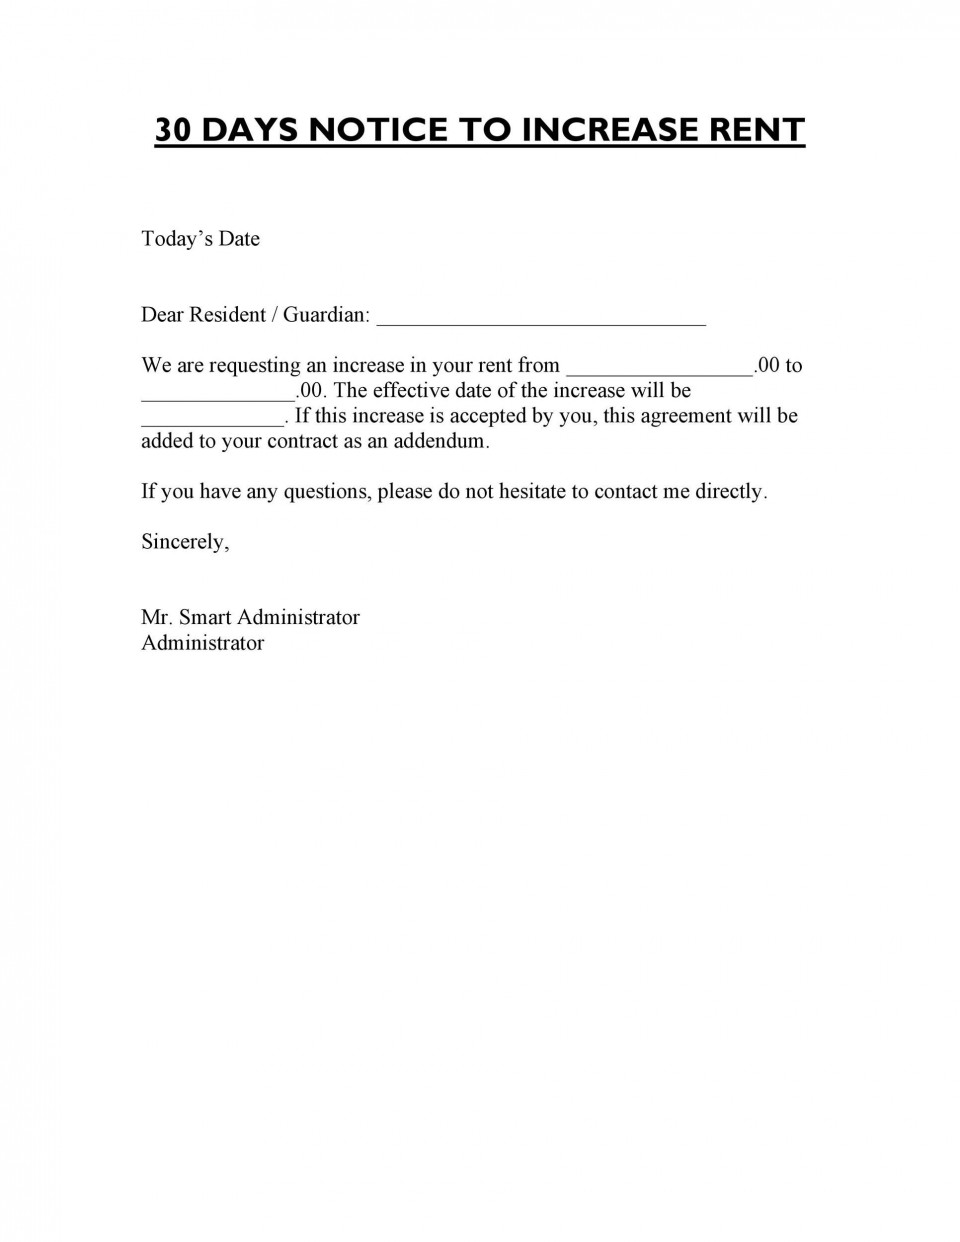 005 Awesome Rent Increase Letter Template Sample  Rental South Africa Nz Scotland960